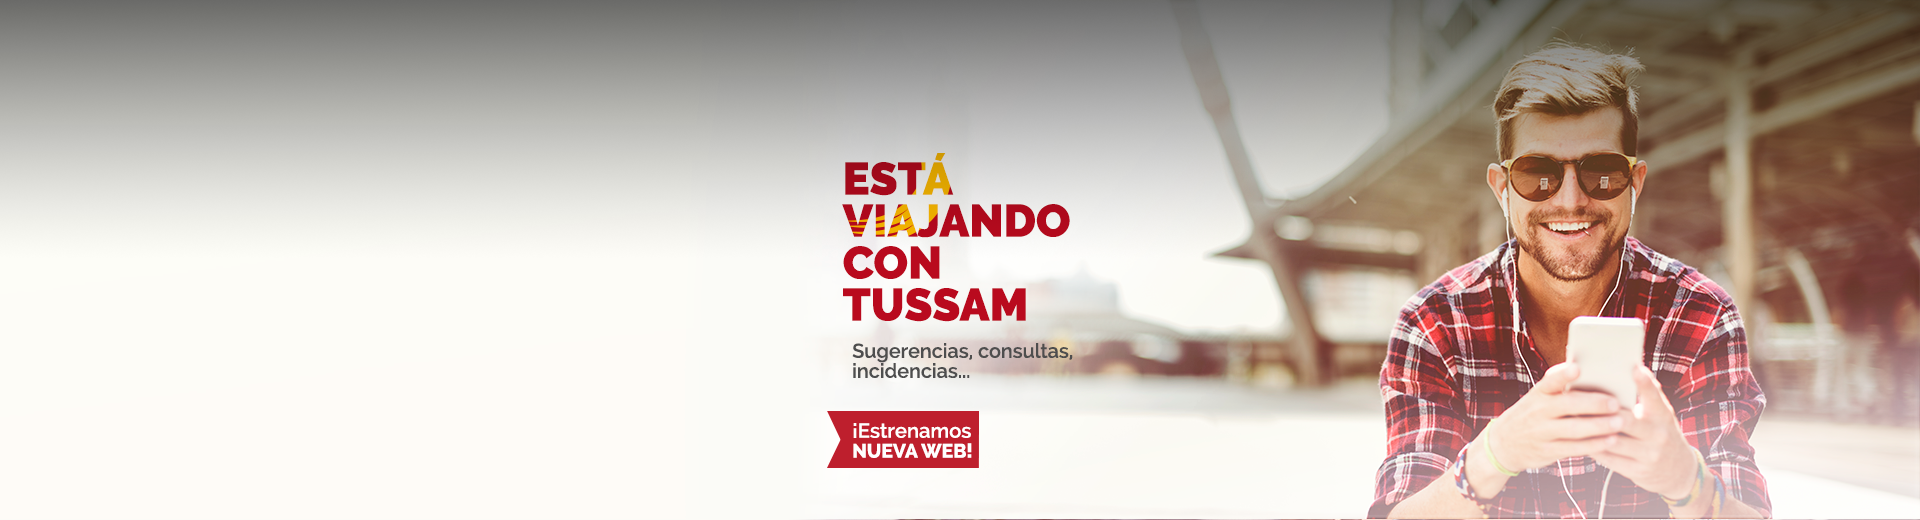 https://www.tussam.es/sites/default/files/revslider/image/Slider_1920x520_03.png